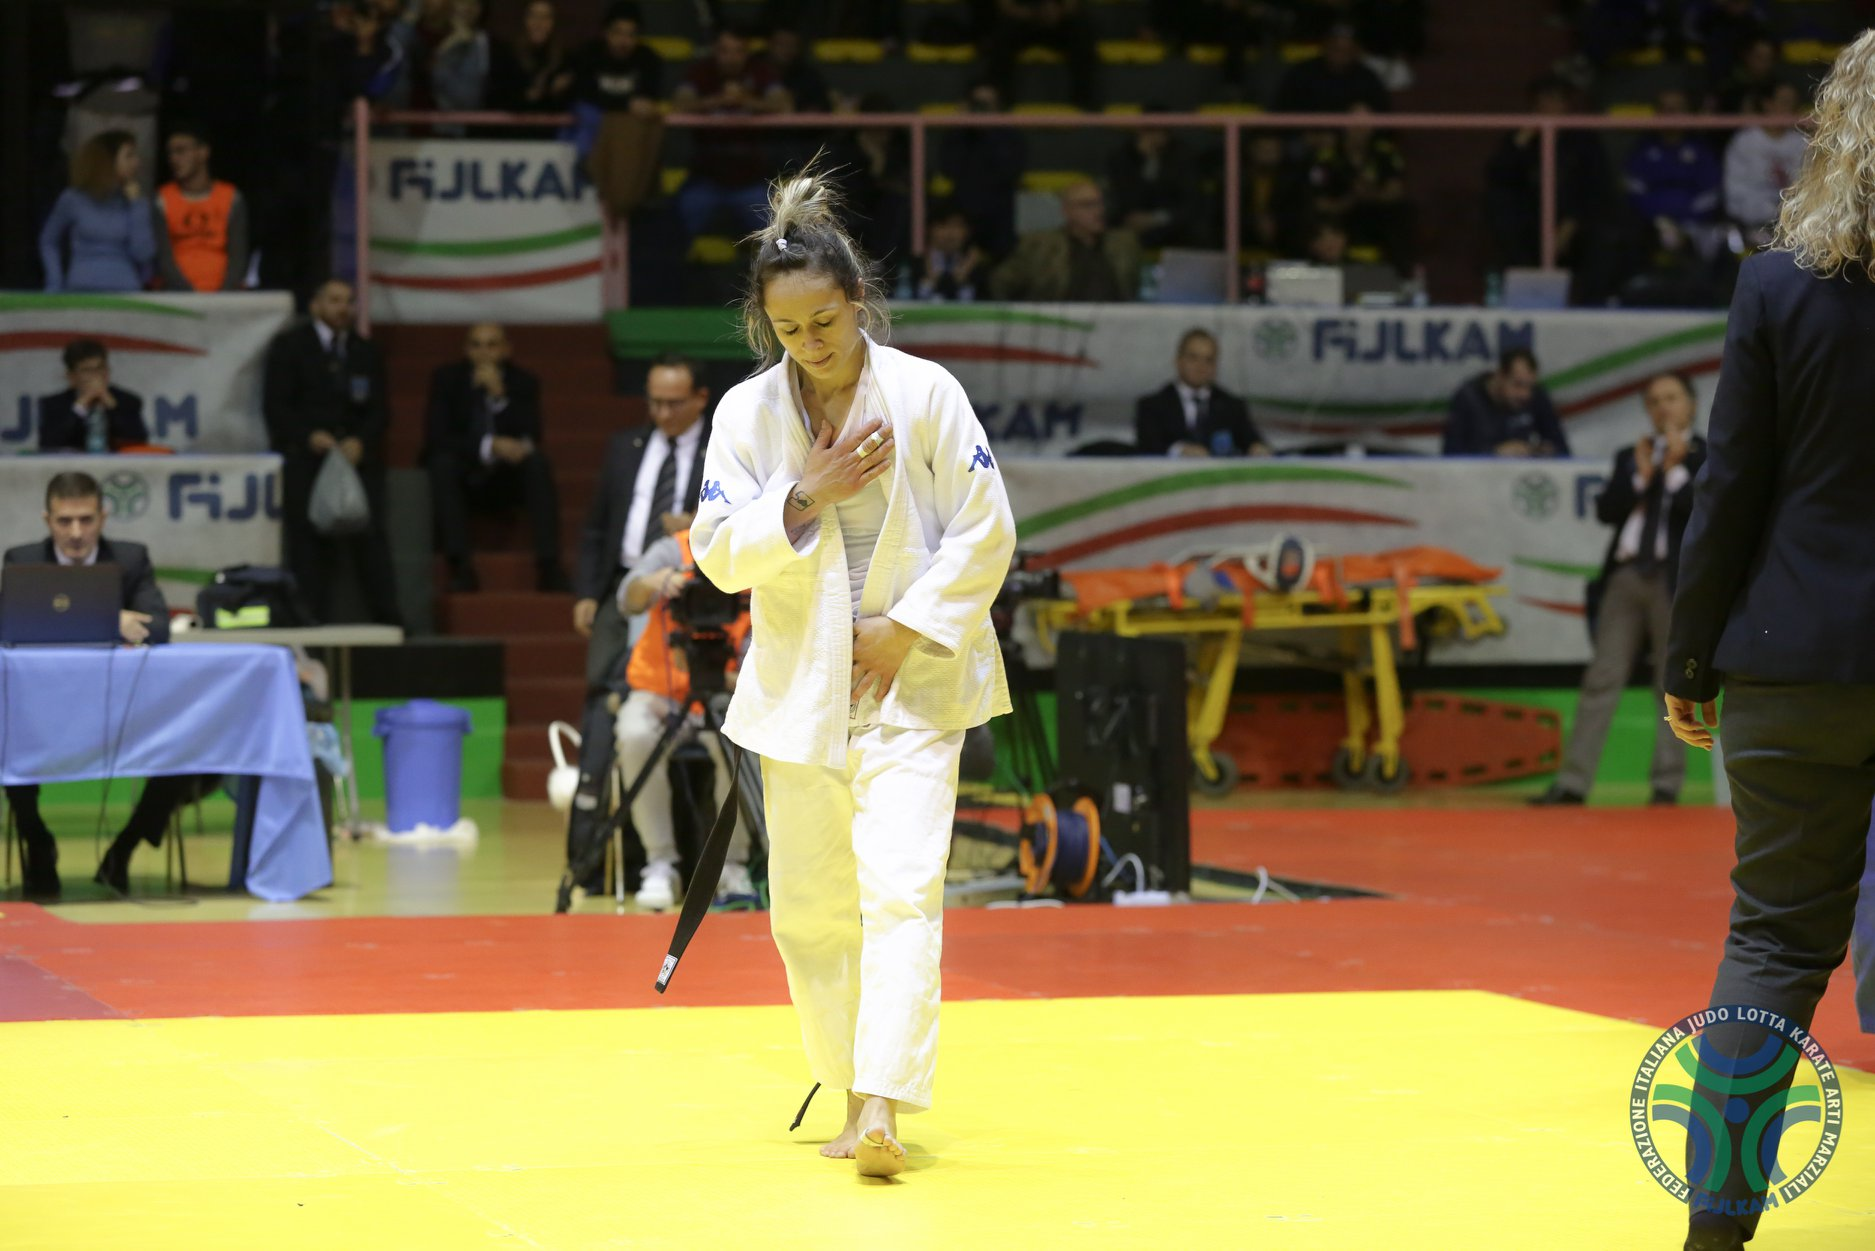 Watch Daniela Krukower World Judo Champion video